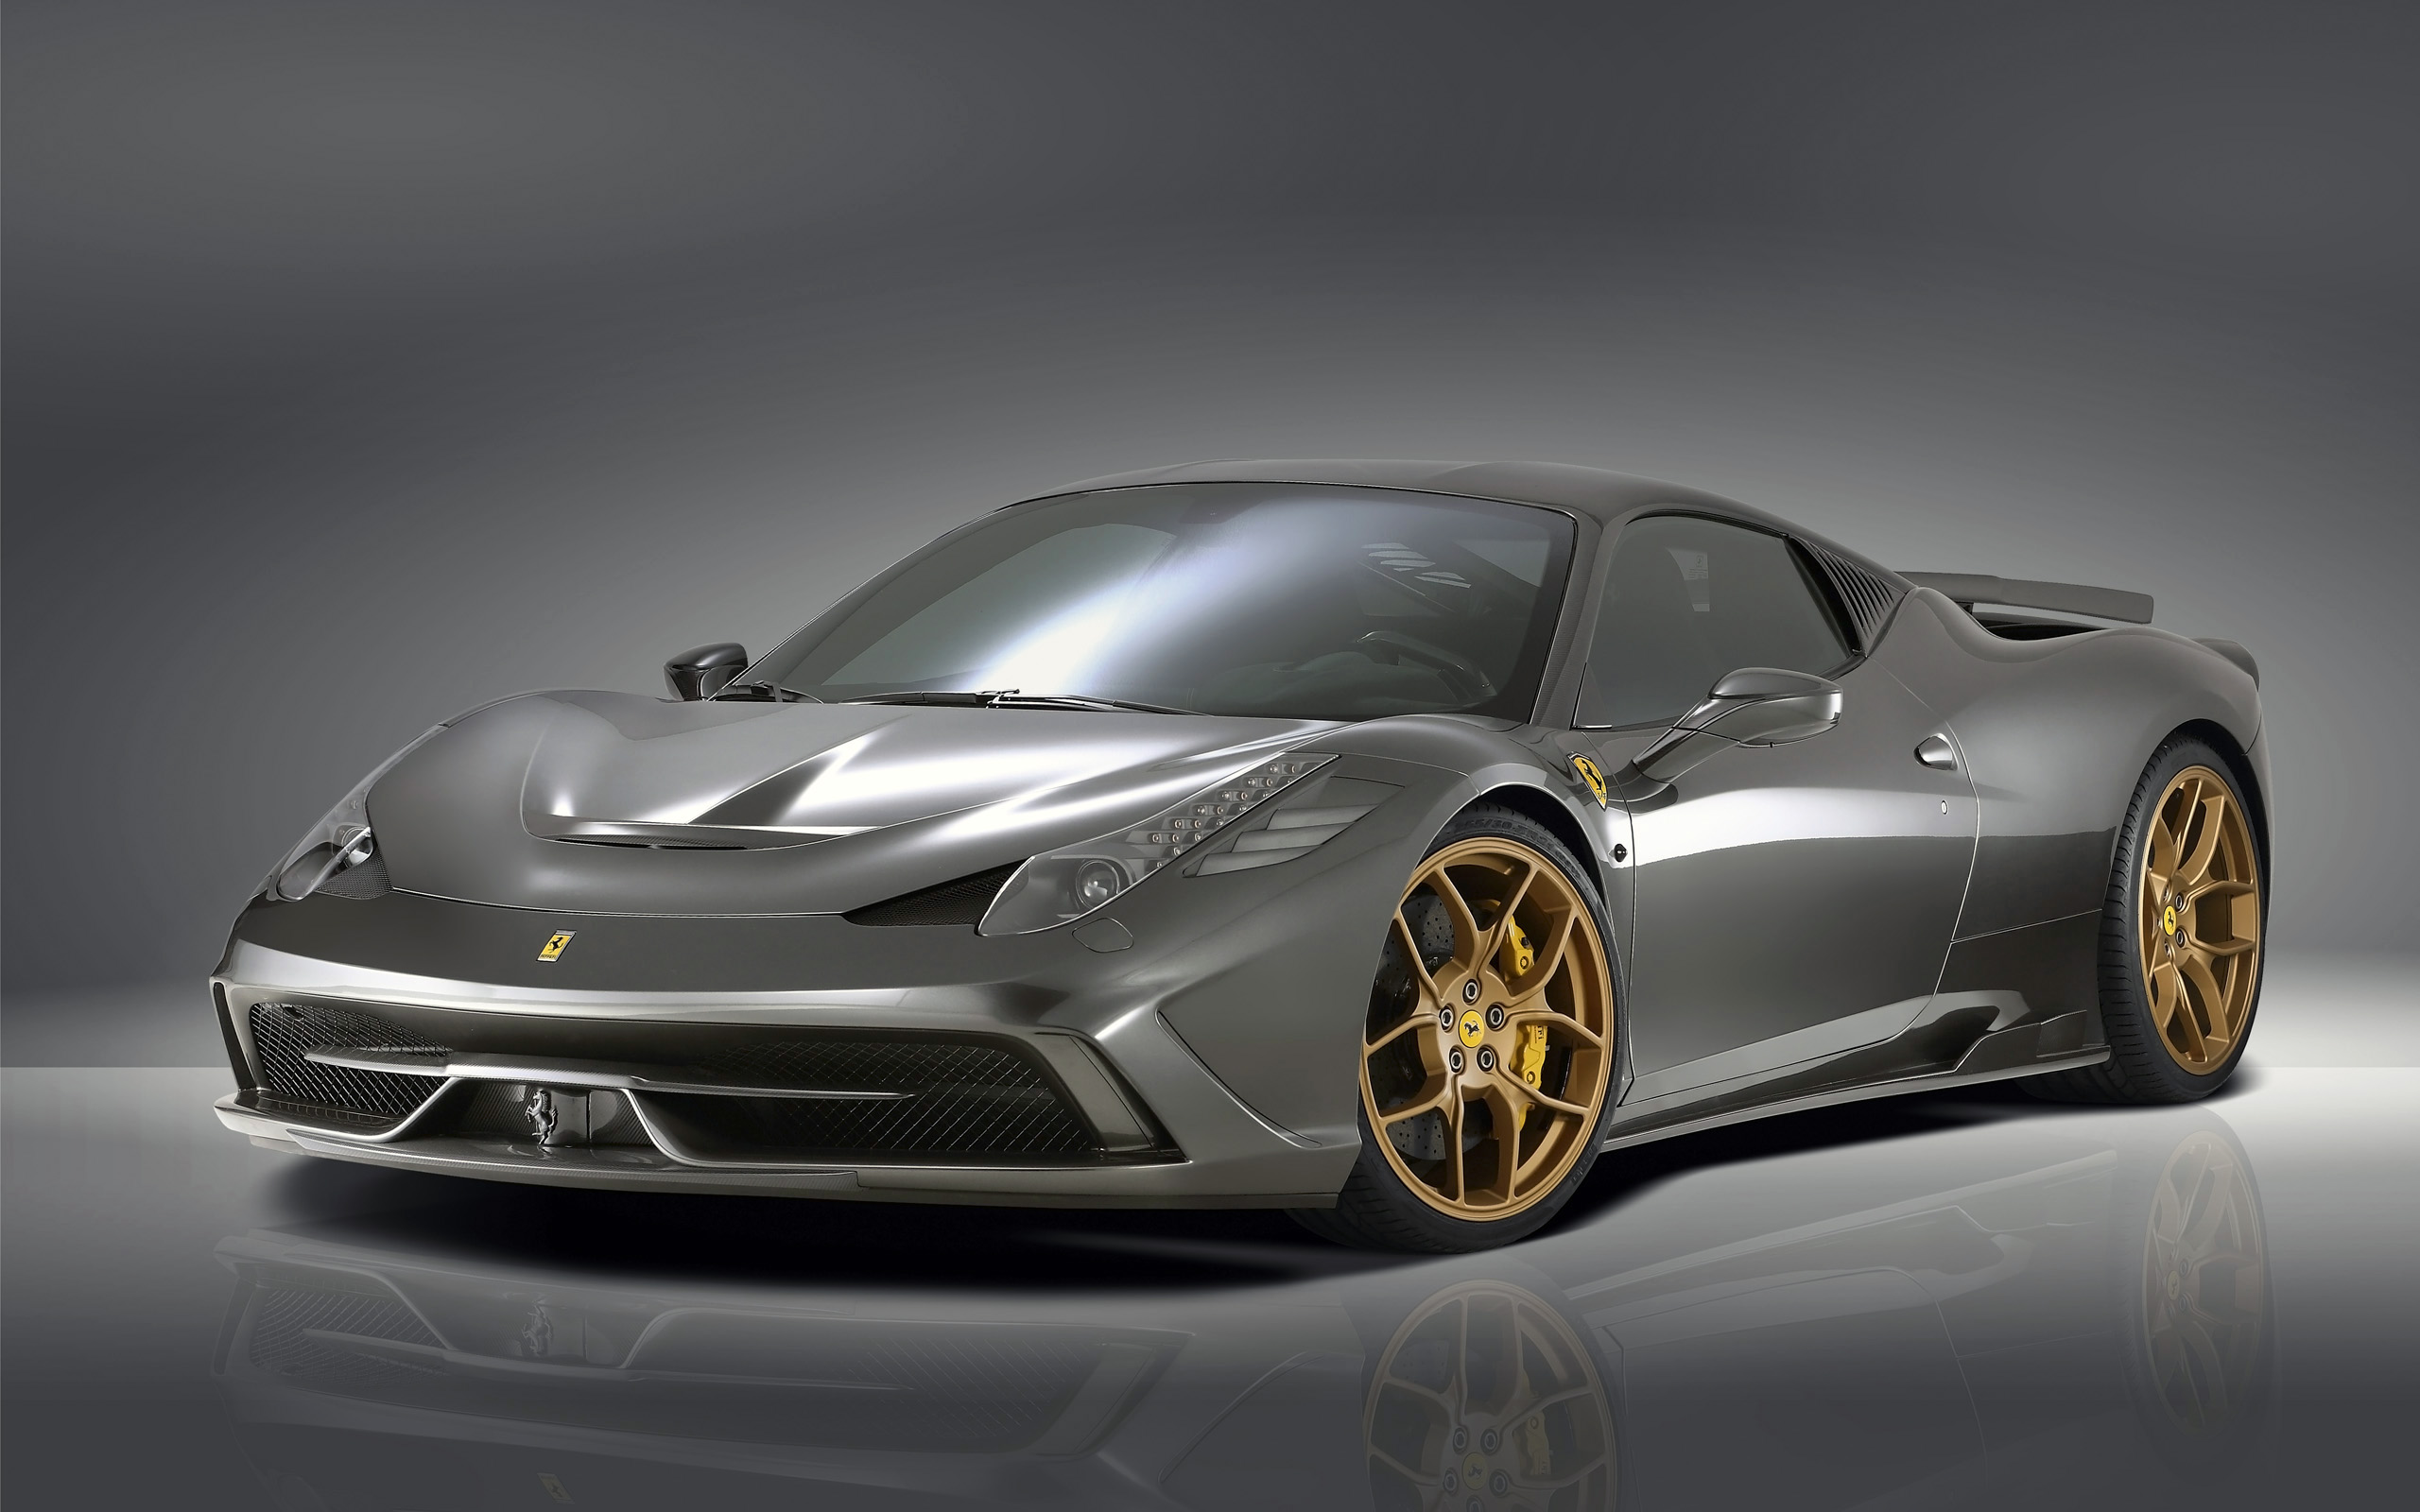 Novitec Rosso Ferrari 458 Speciale 2014 Wallpaper Hd Car Wallpapers Id 4678